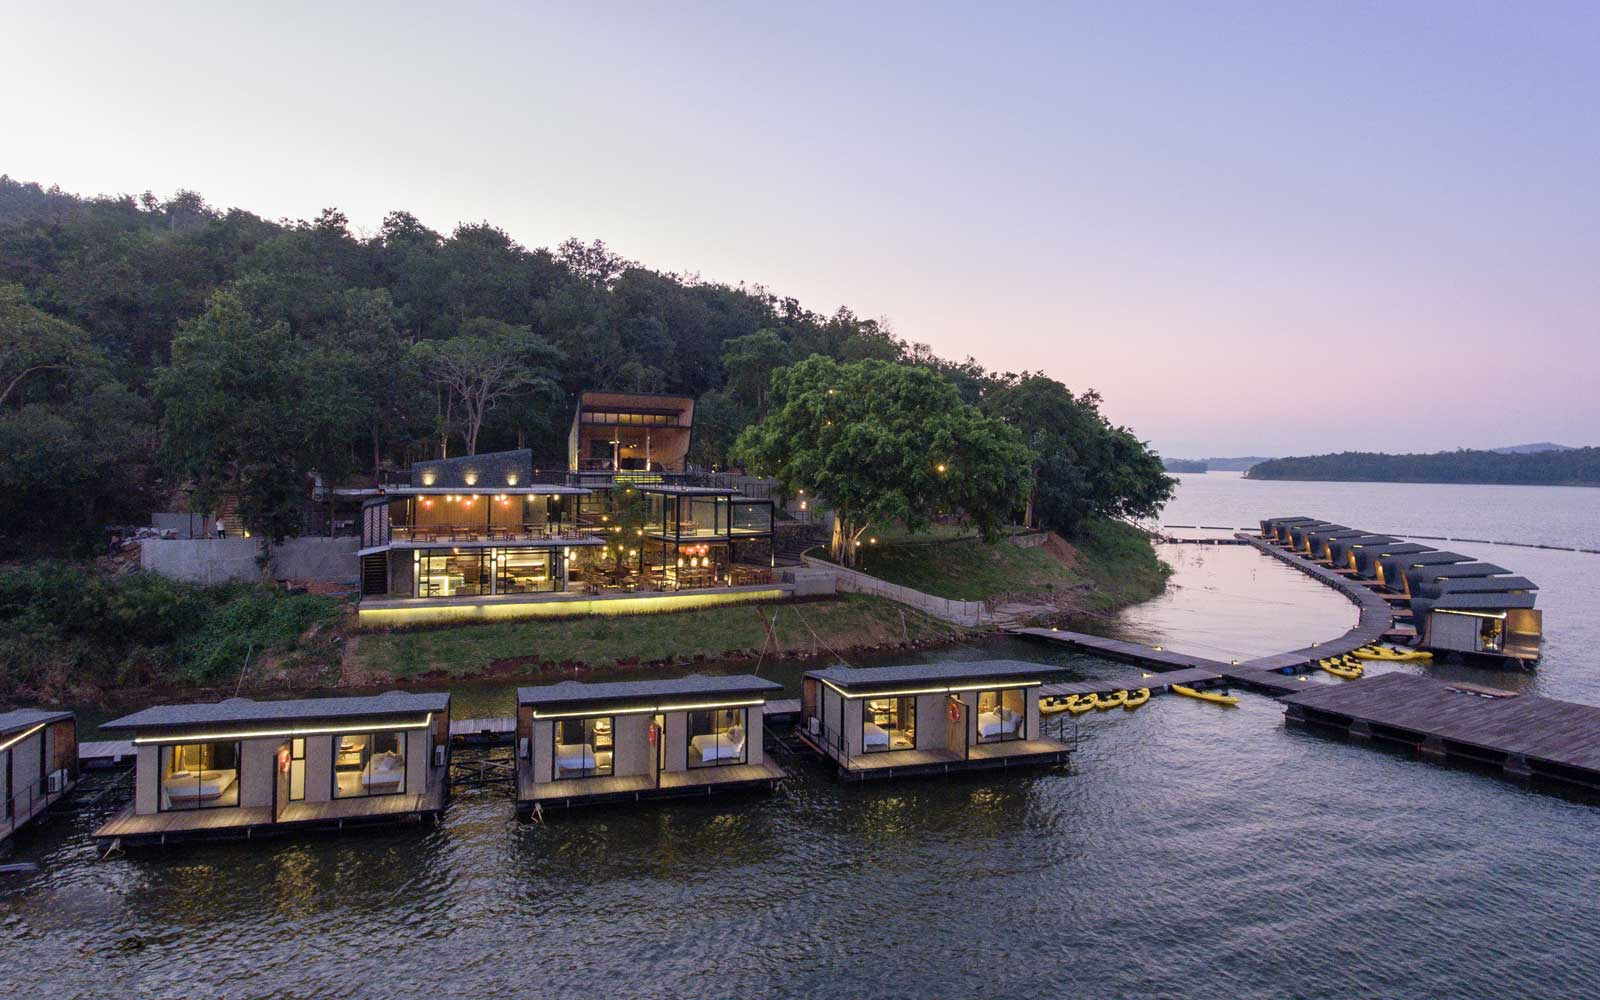 Thailand's Z9 floating hotel at dusk